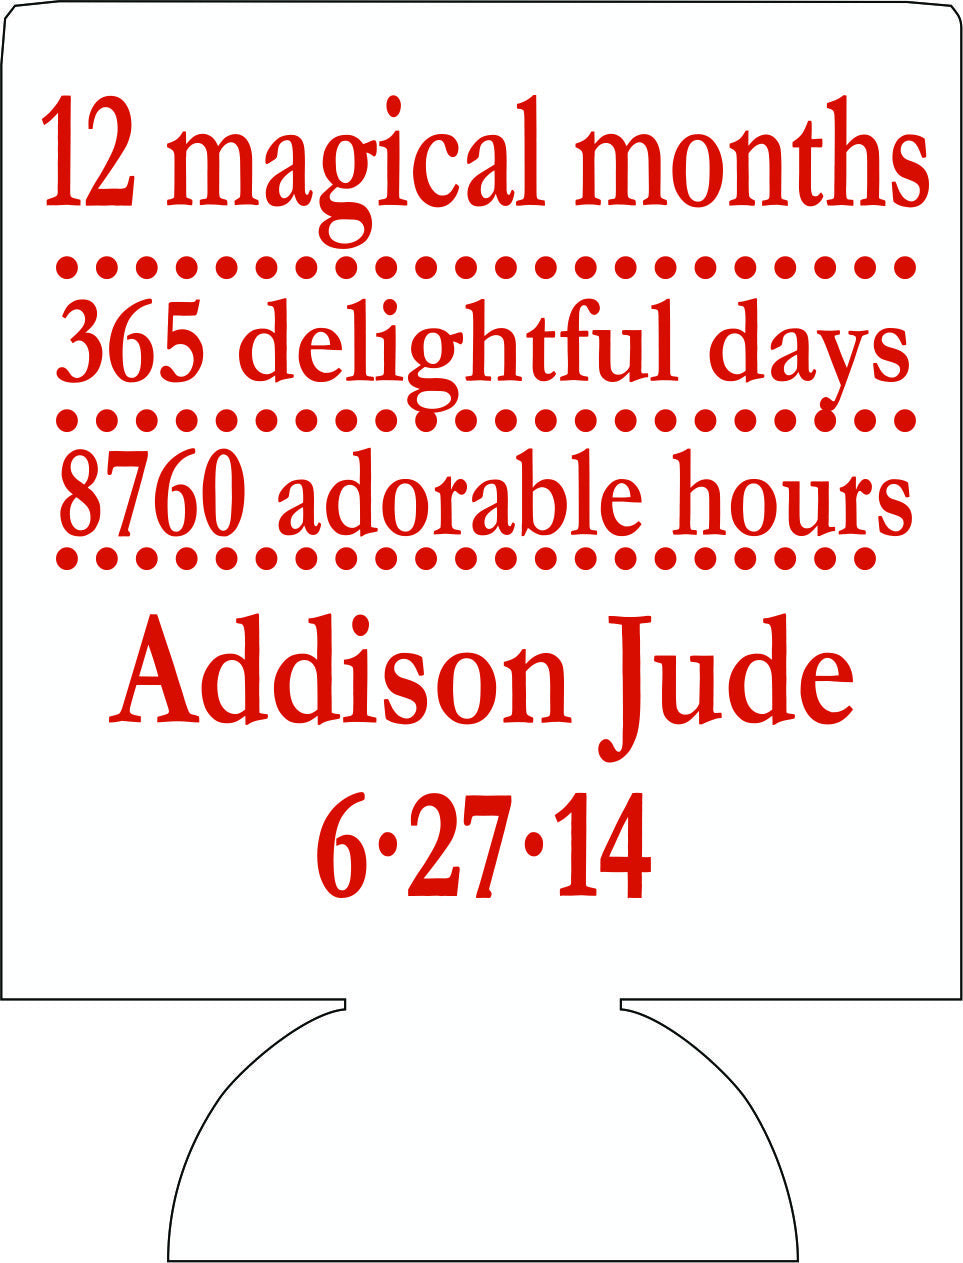 12 magical months wedding koozies Can Coolers